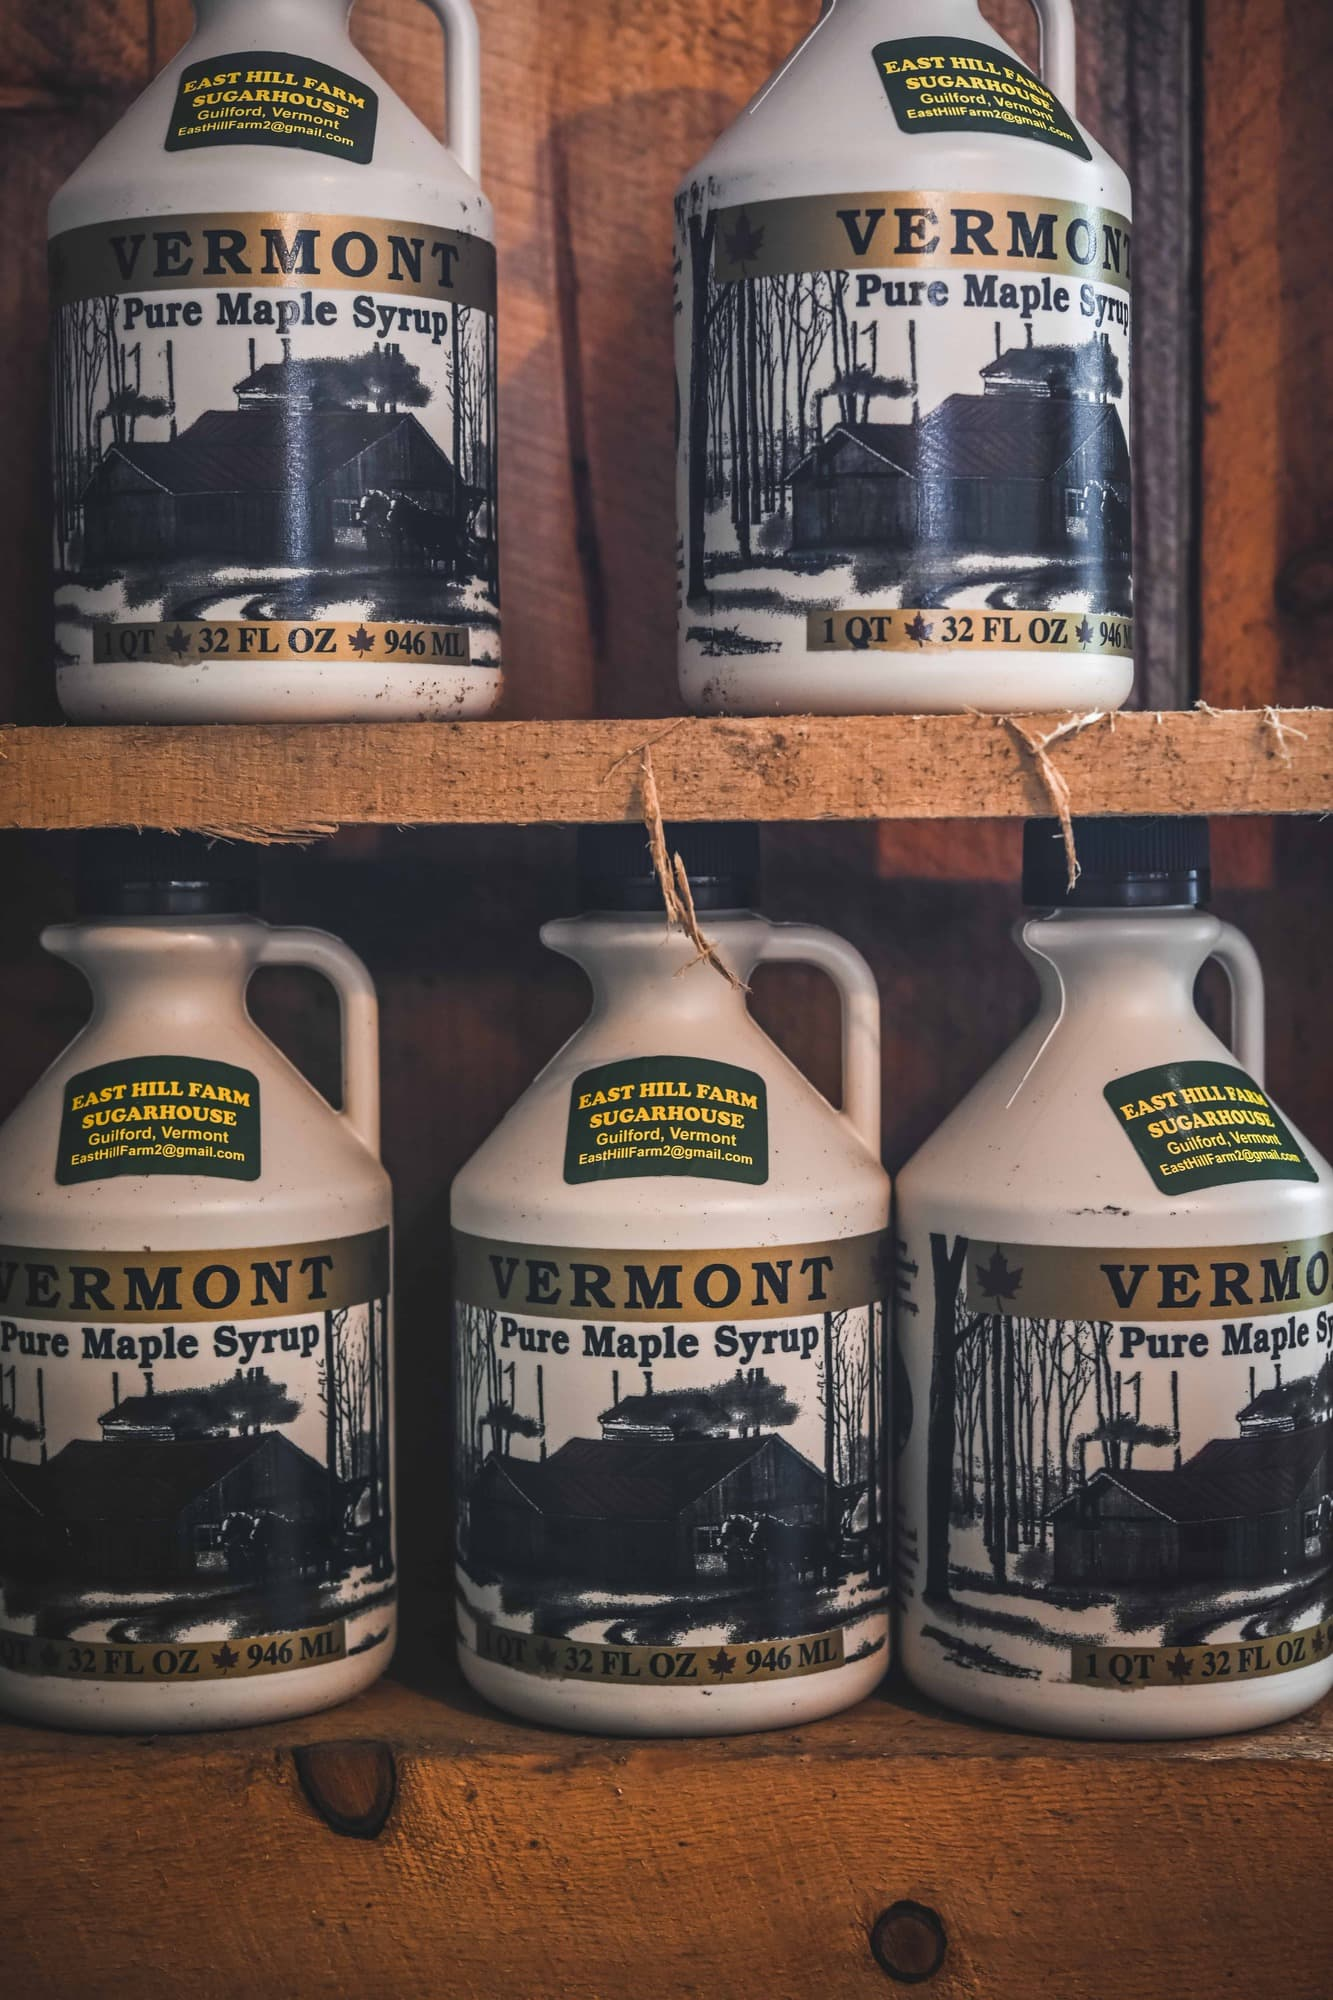 Close up of large jugs of Vermont maple syrup on wood shelves